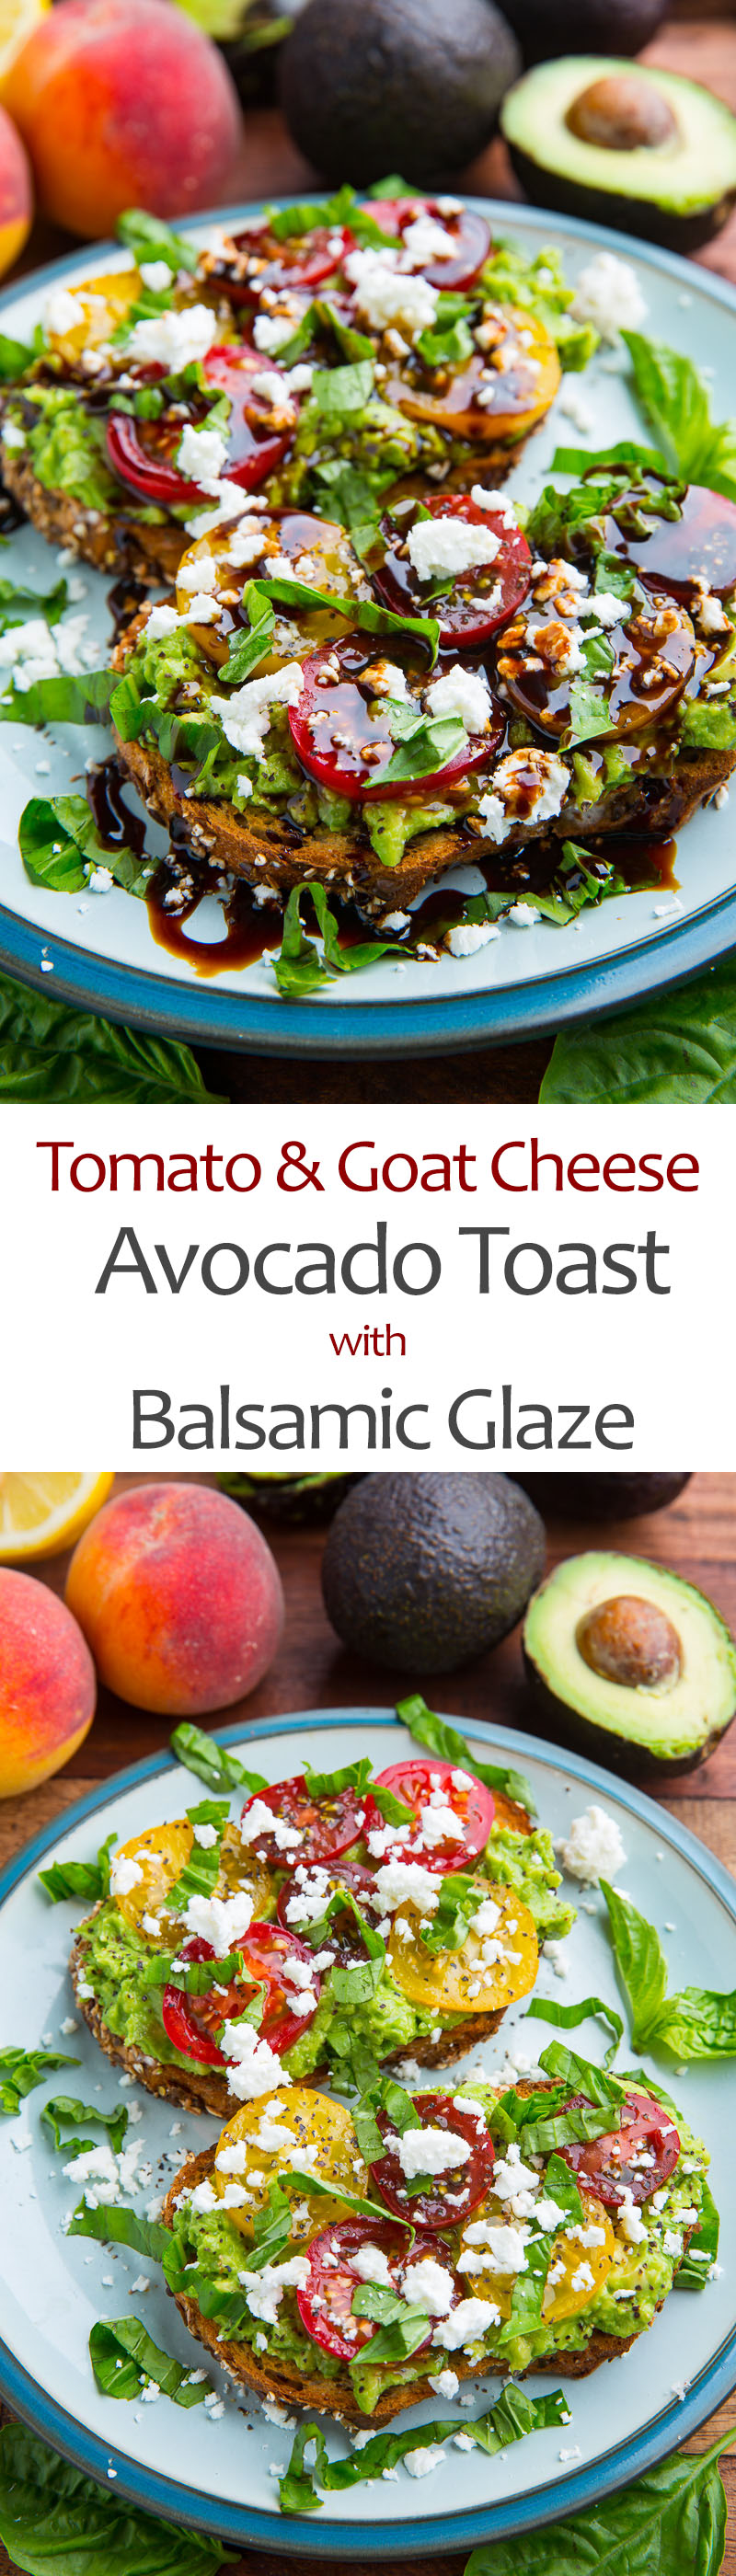 Tomato and Goat Cheese Avocado Toast with Balsamic Glaze